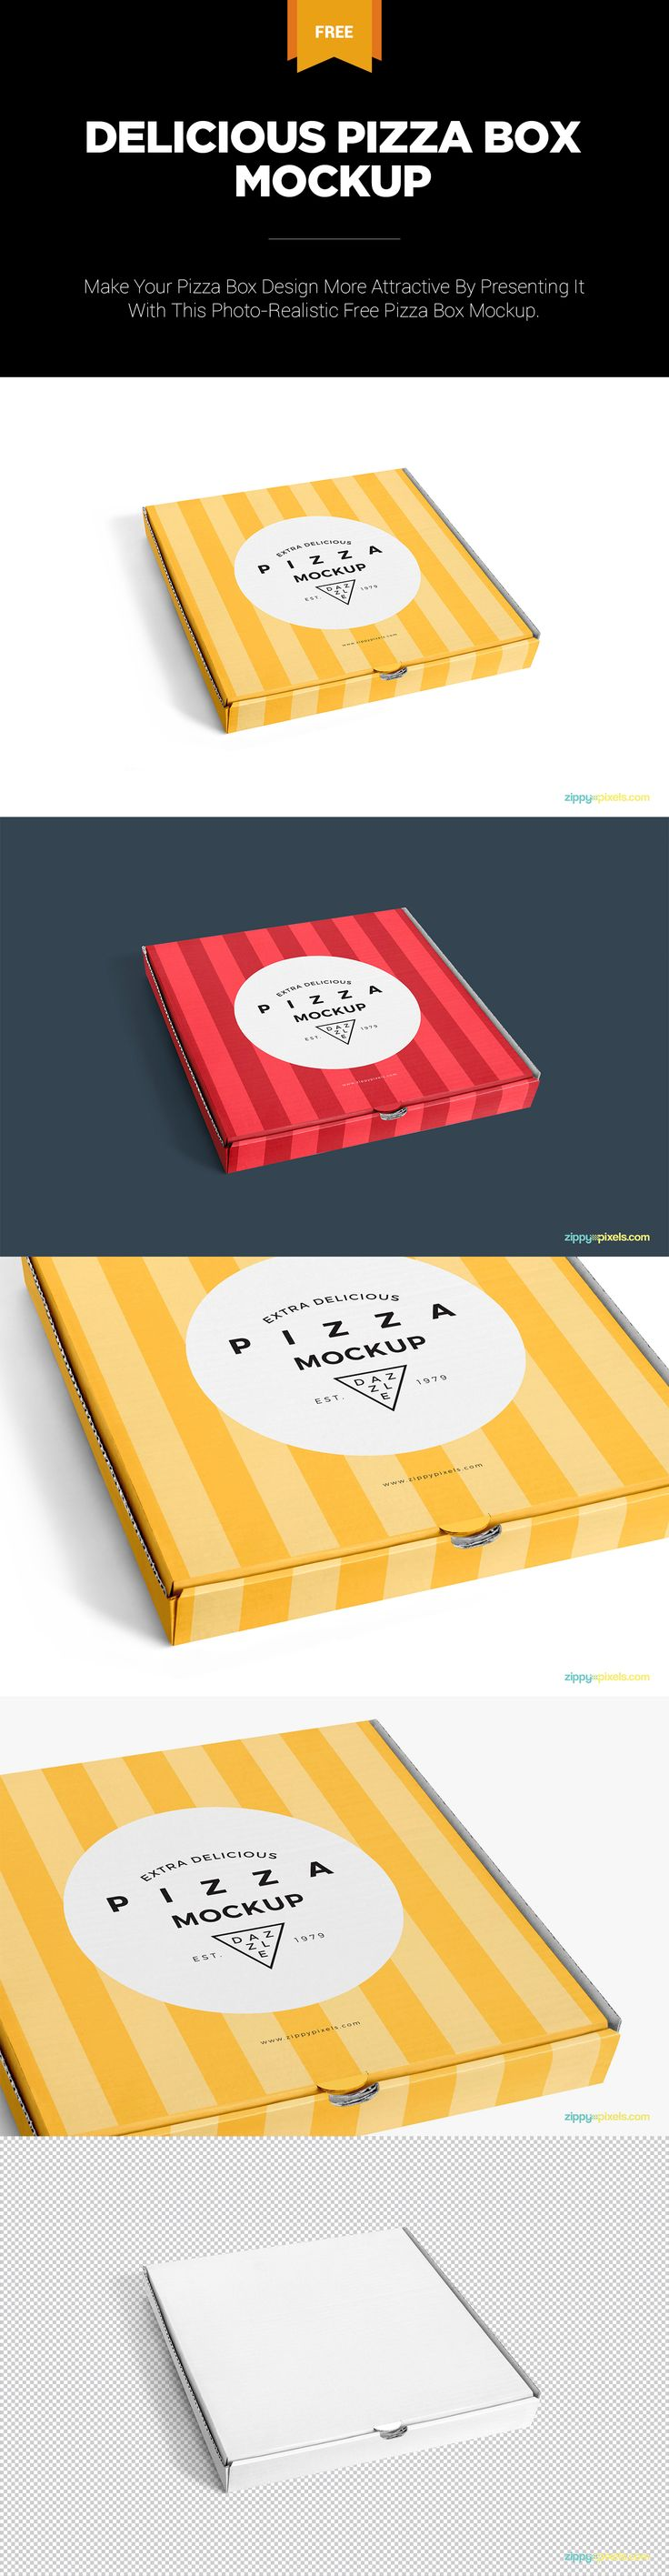 Make infinite design presentations using this single pizza box mockup. #Free #freebie #mockup #pizza #box #freemockup #PSD #Photoshop #pizzabox